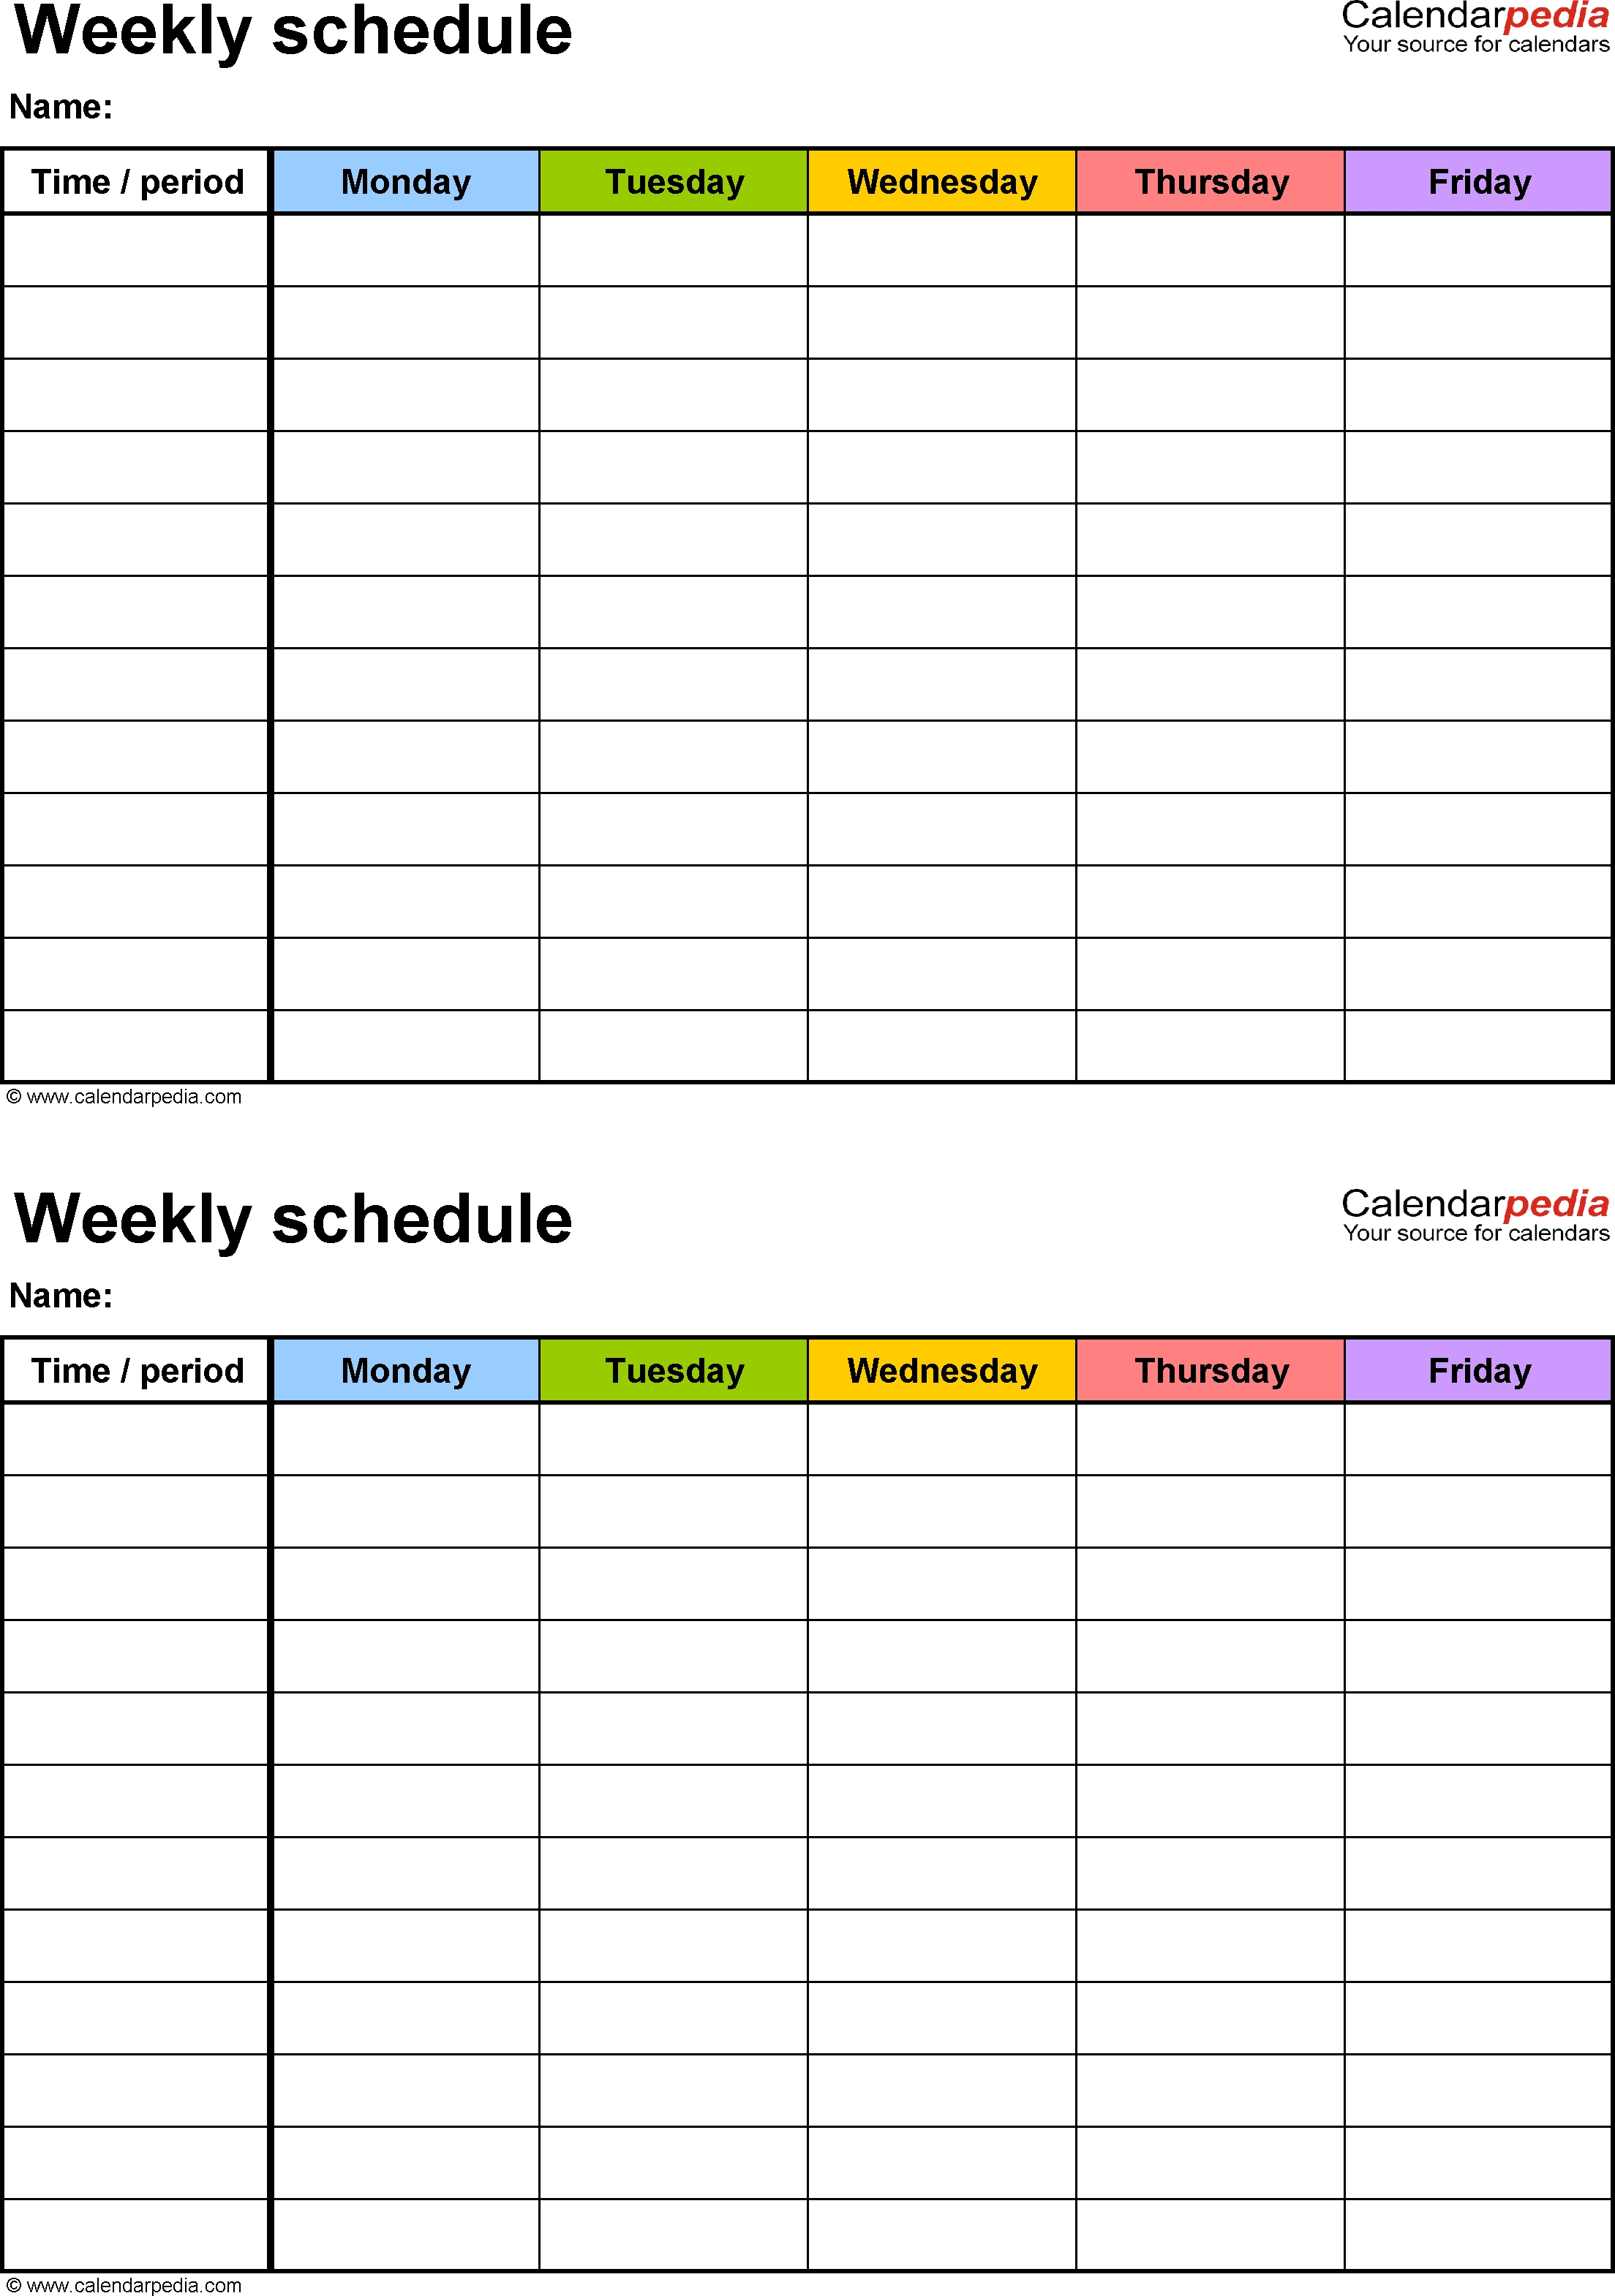 Template Monday To Friday | Calendar Template Printable Schedule Sheet Monday To Friday